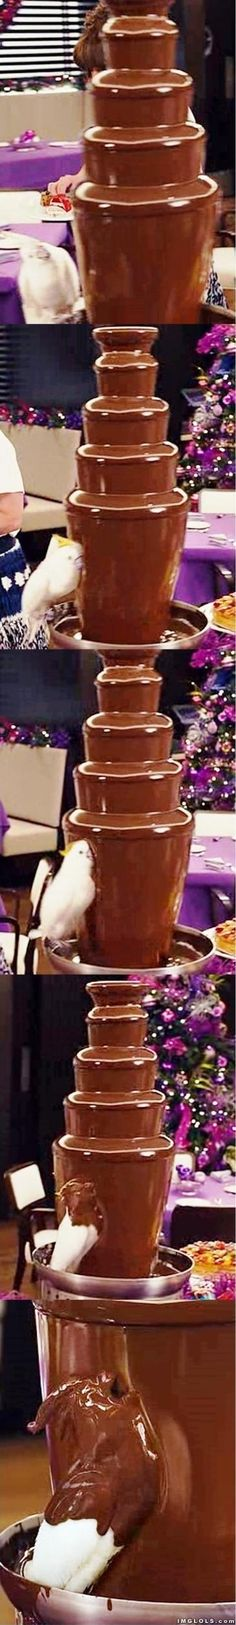 Having the chocolate fountain all to yourself.  --part of me is laughing hysterically... the other part is really hoping it didn't kill the bird.